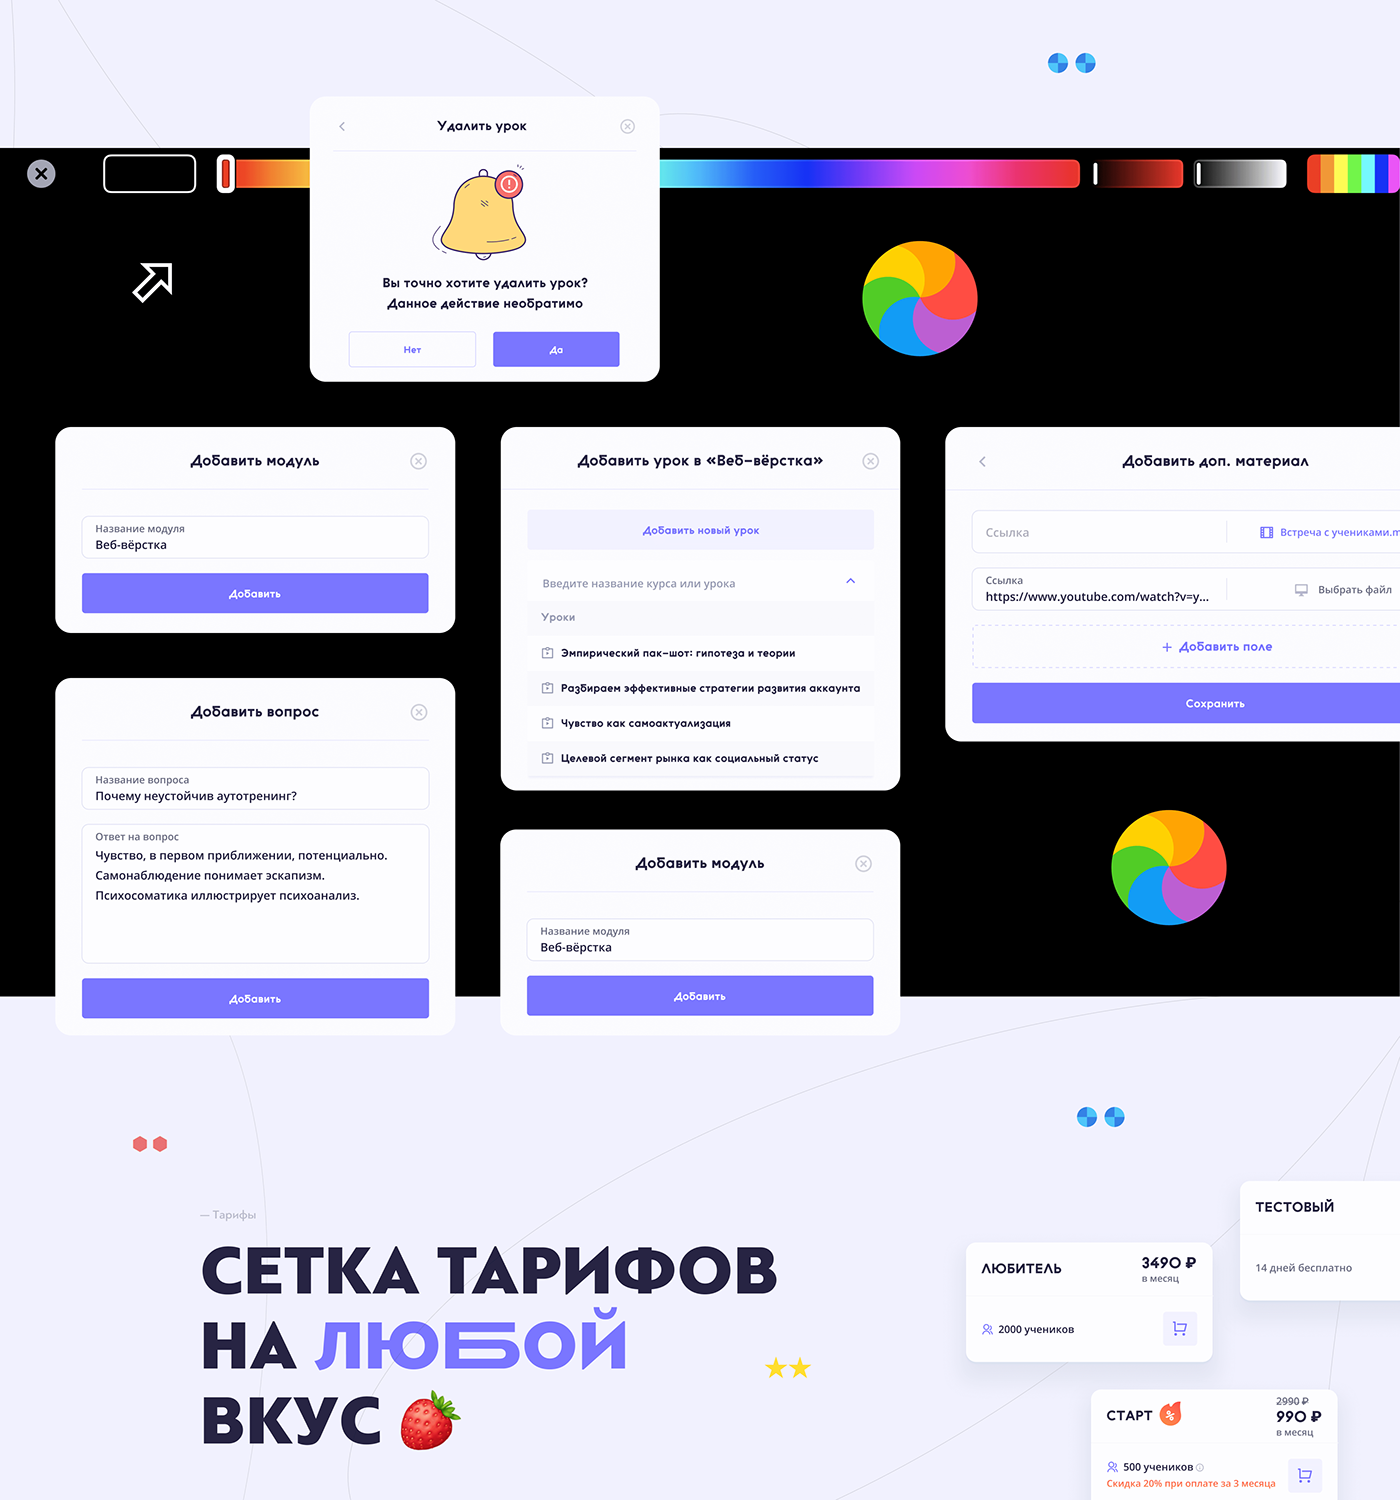 Modals, Window, Graphic Design, Icons, Mockup, Color, Discover, Trends, Profile, Fonts, Flatonica